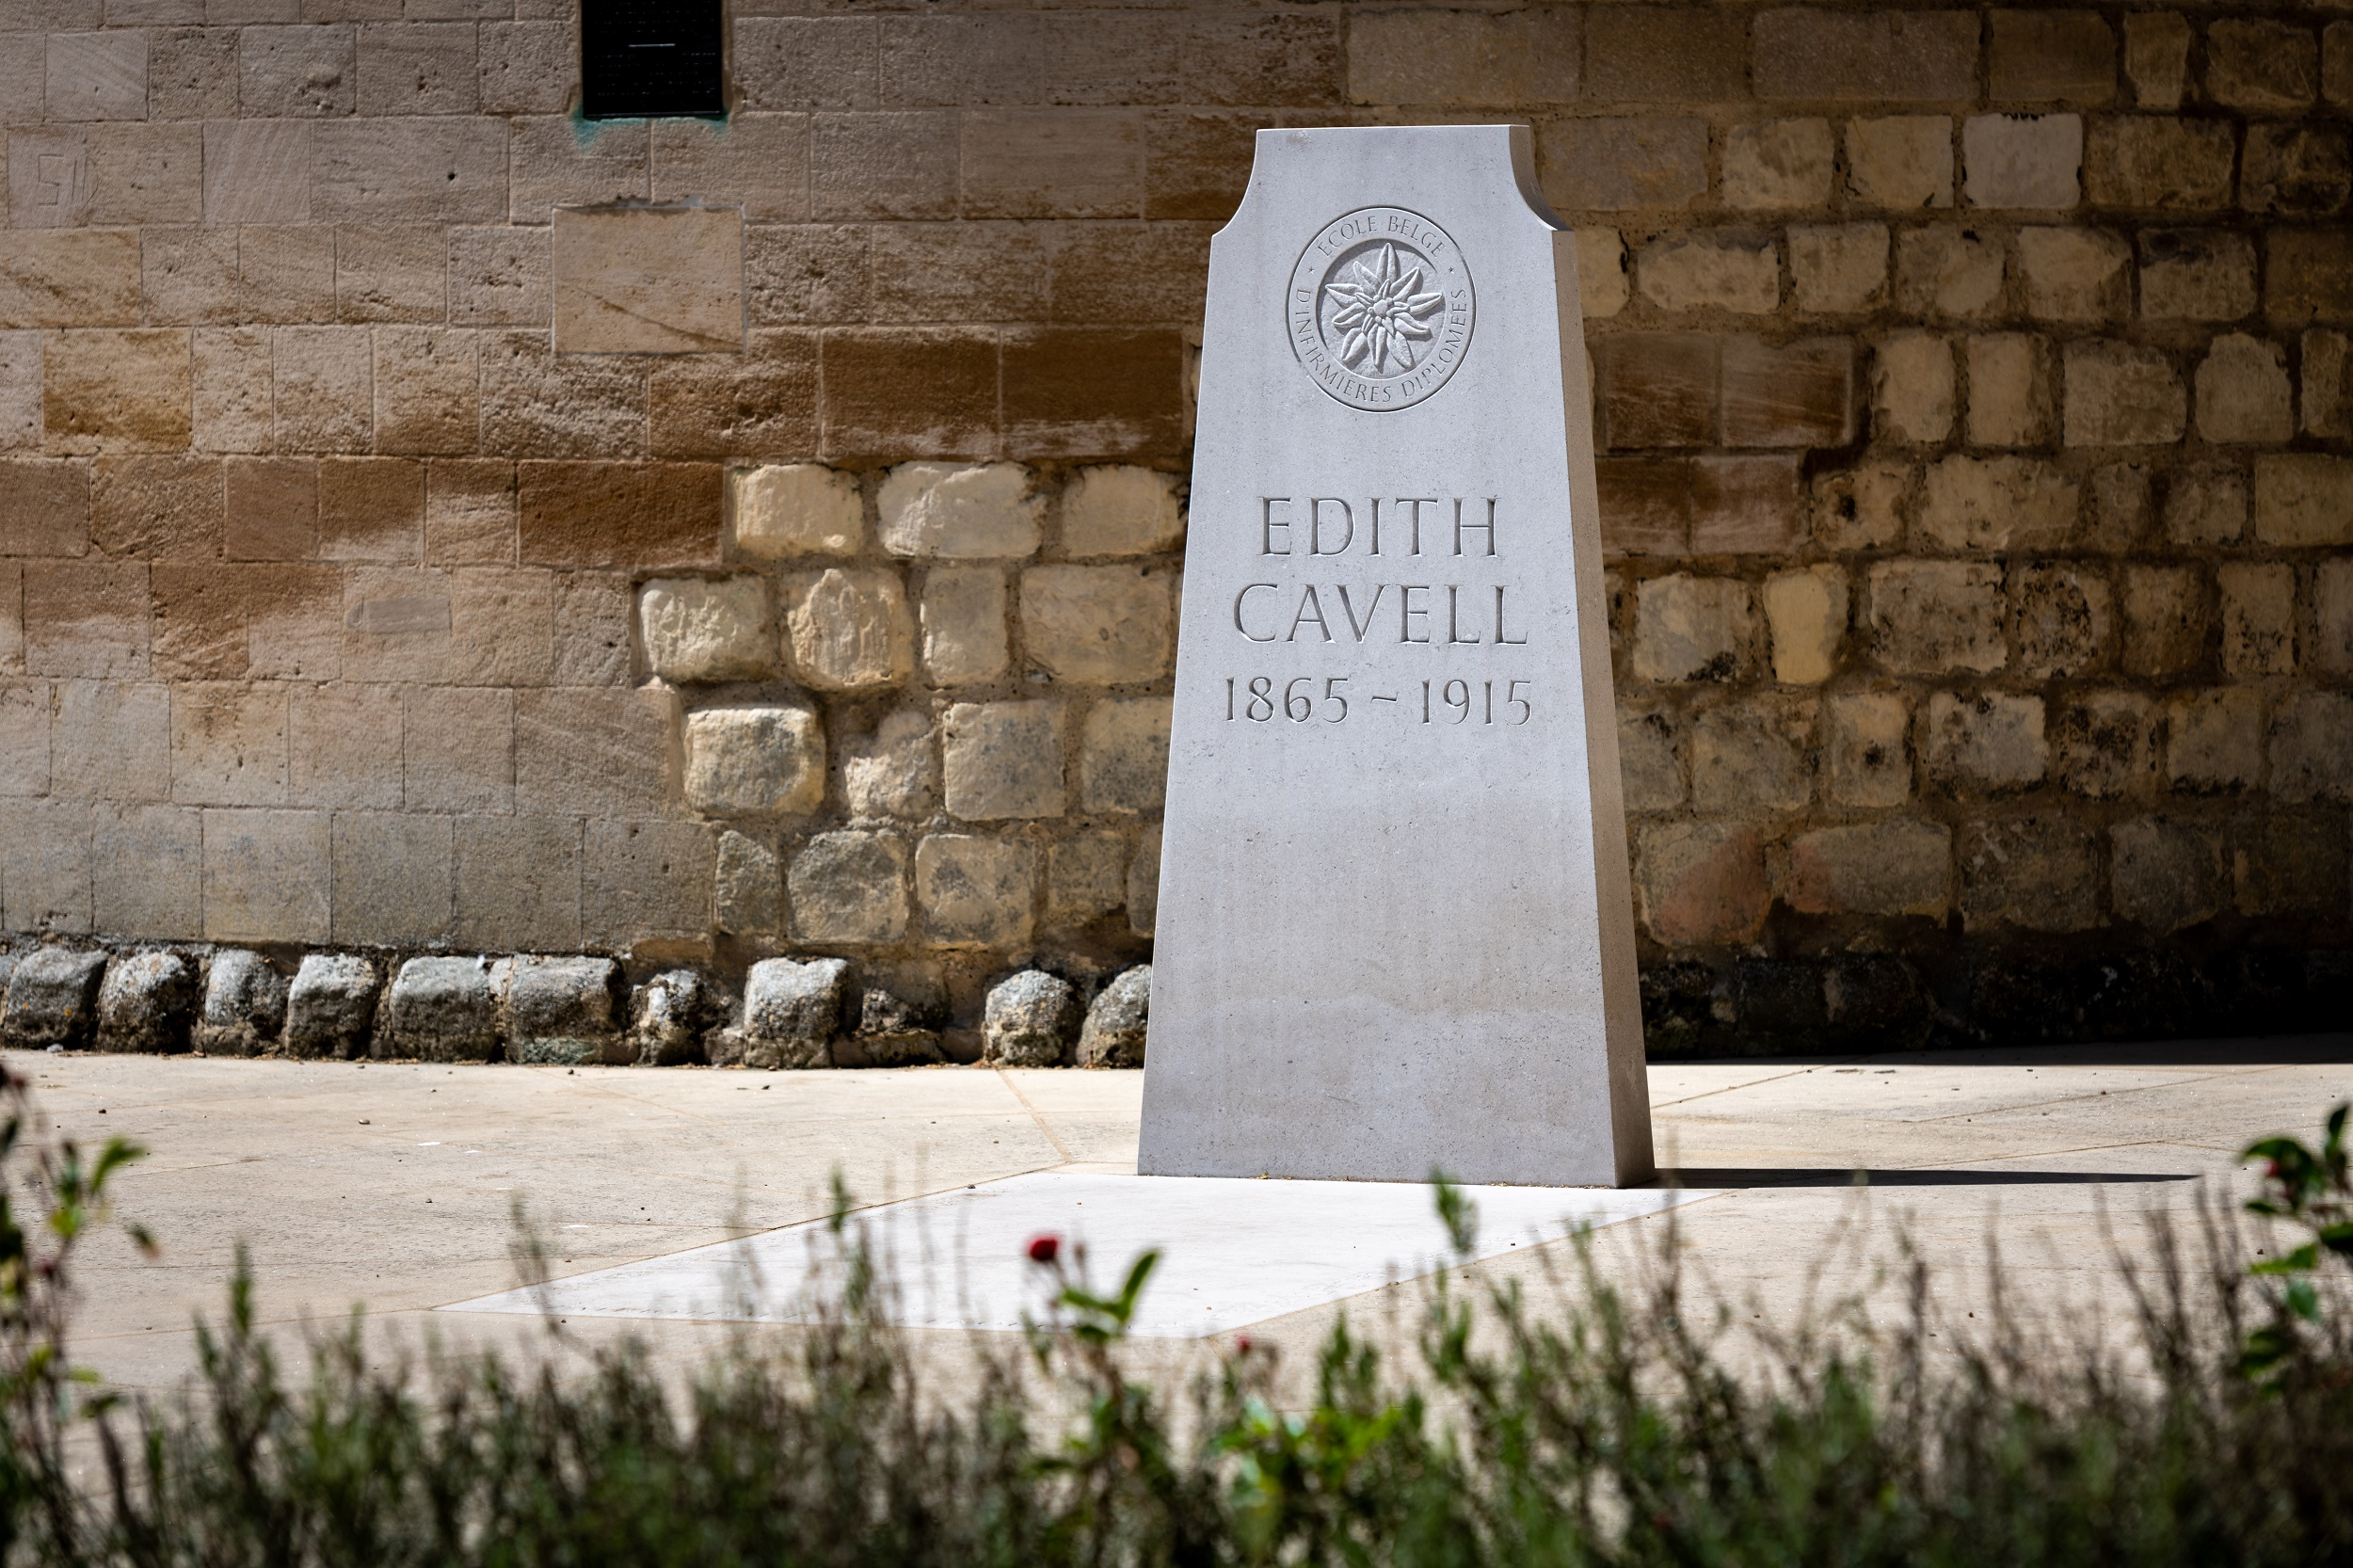 The grave of Edith Cavell (c) Bill Smith